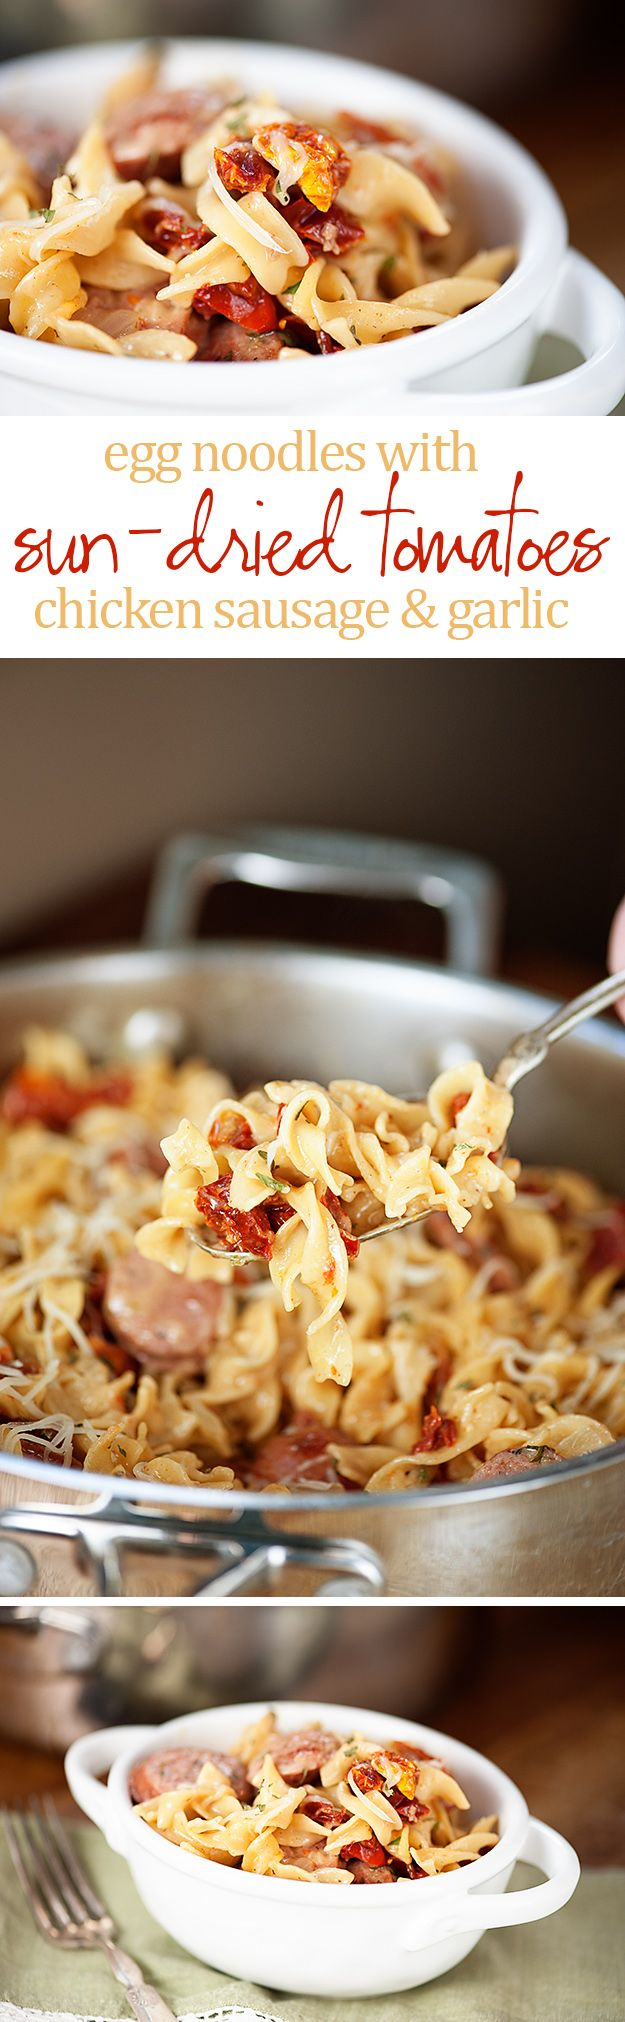 Sun-Dried Tomatoes with Egg Noodles and Chicken Sausage...perfect comfort food for a chilly evening and ready in 30 minutes!